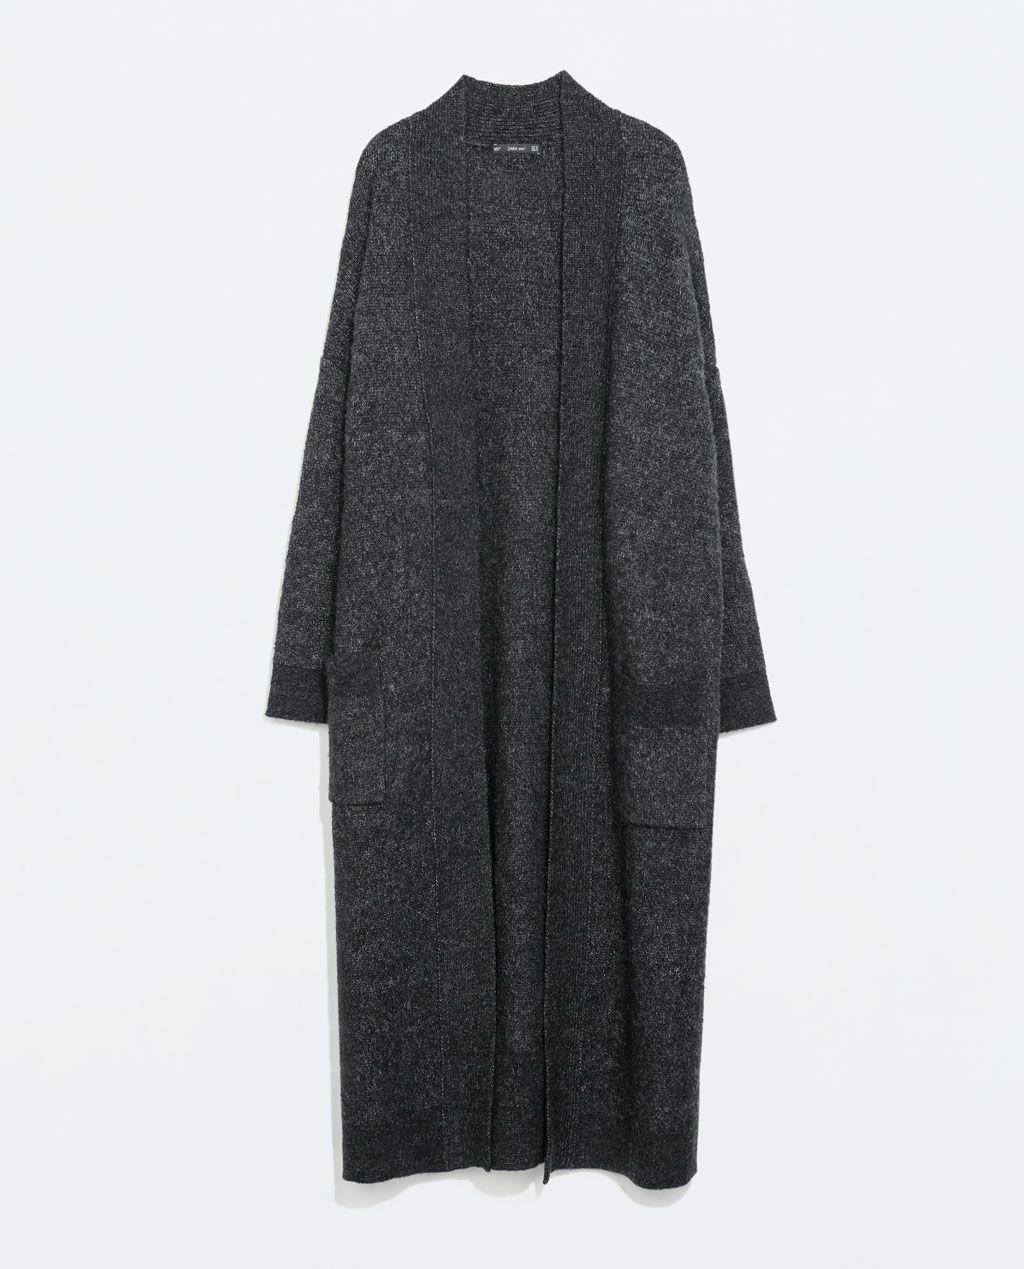 Image 8 of EXTRA-LONG CARDIGAN WITH POCKETS from Zara | fashion ...